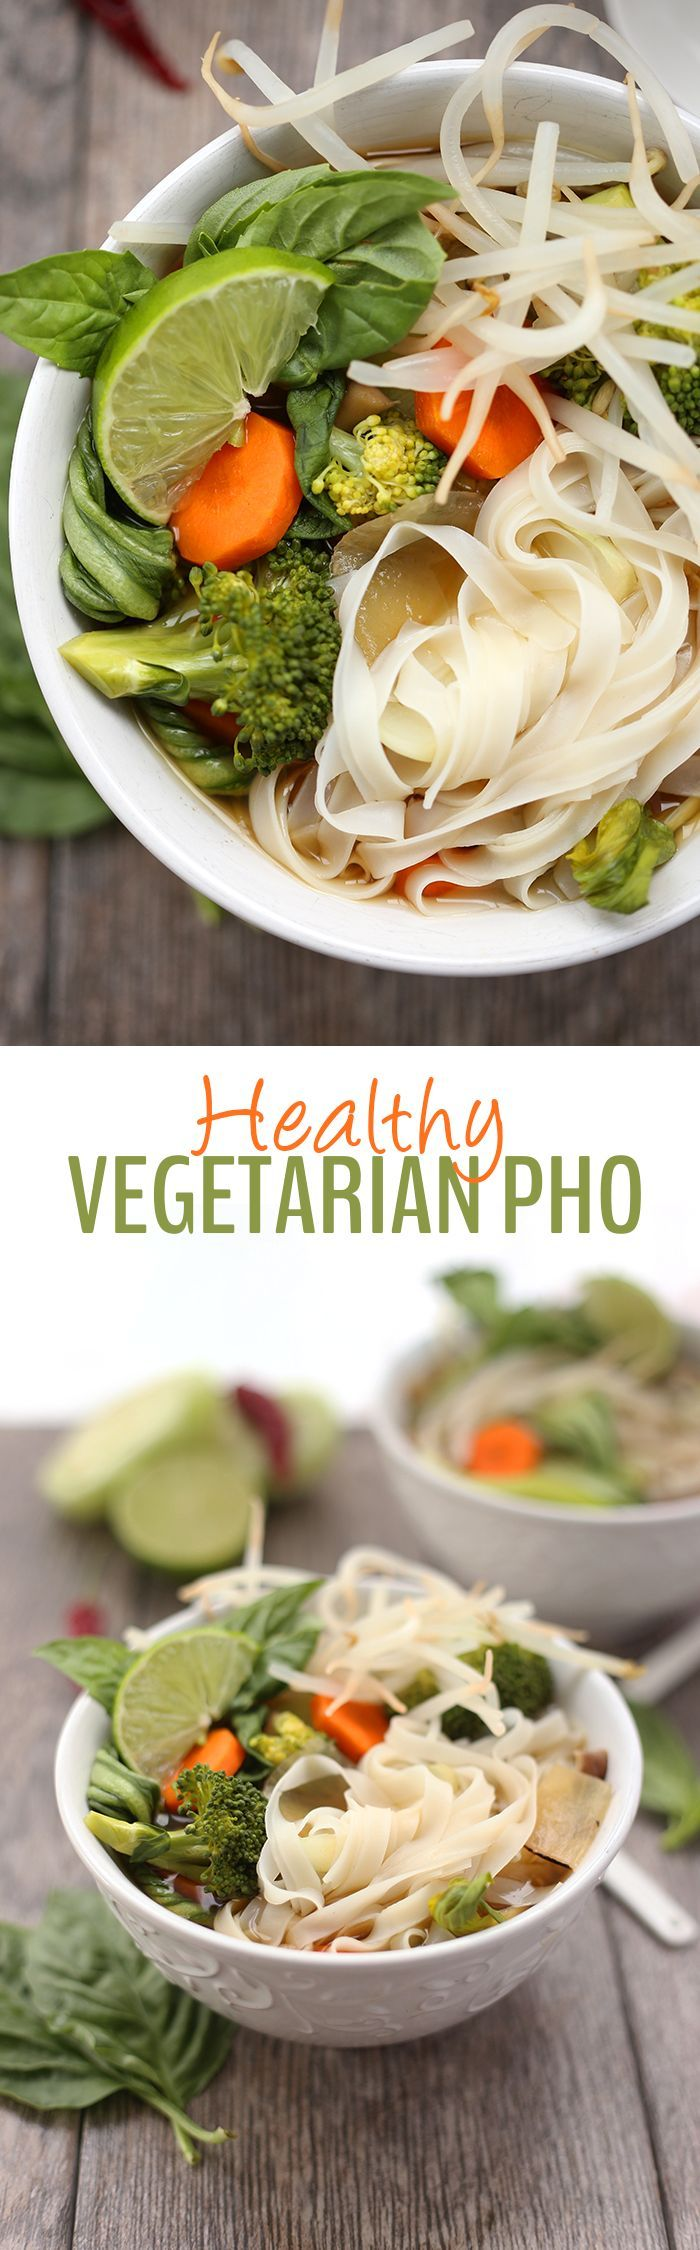 A Healthy Vegetarian Pho recipe with a flavorful and nutritious mushroom broth. This veggie-packed meal will make you ditch the takeout and whip up this Vietnamese classic at home.